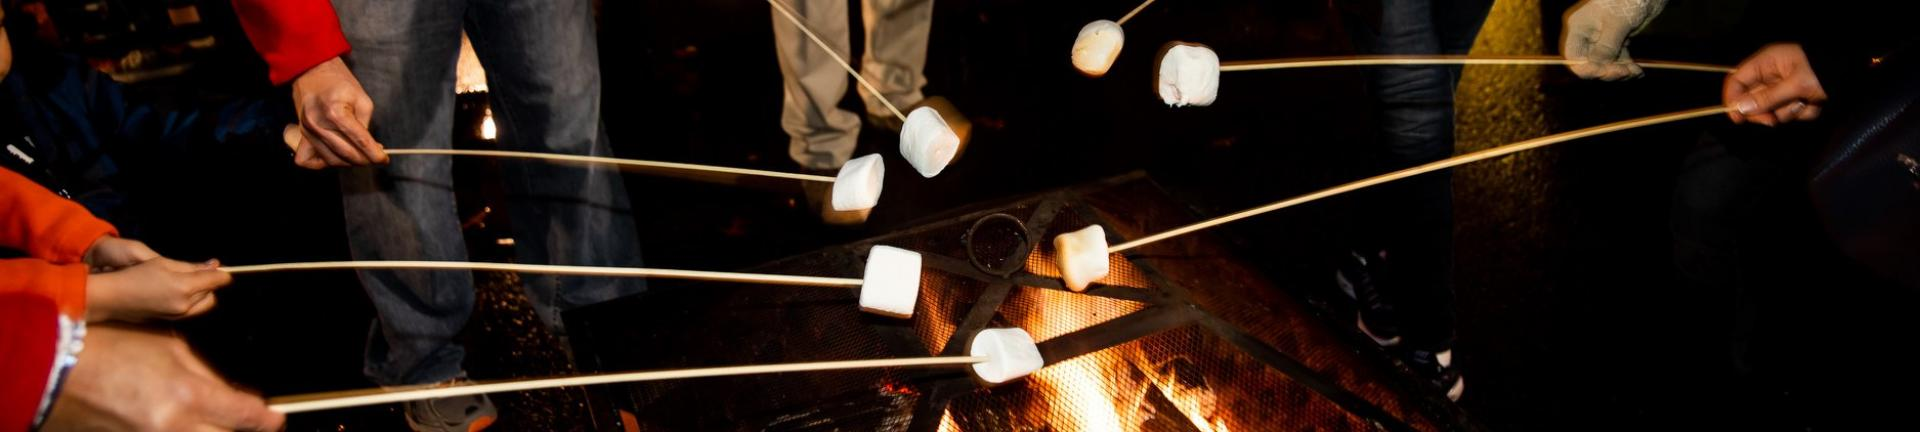 Marshmallow Roasting at Downtown Christmas Magic, True Light Photography